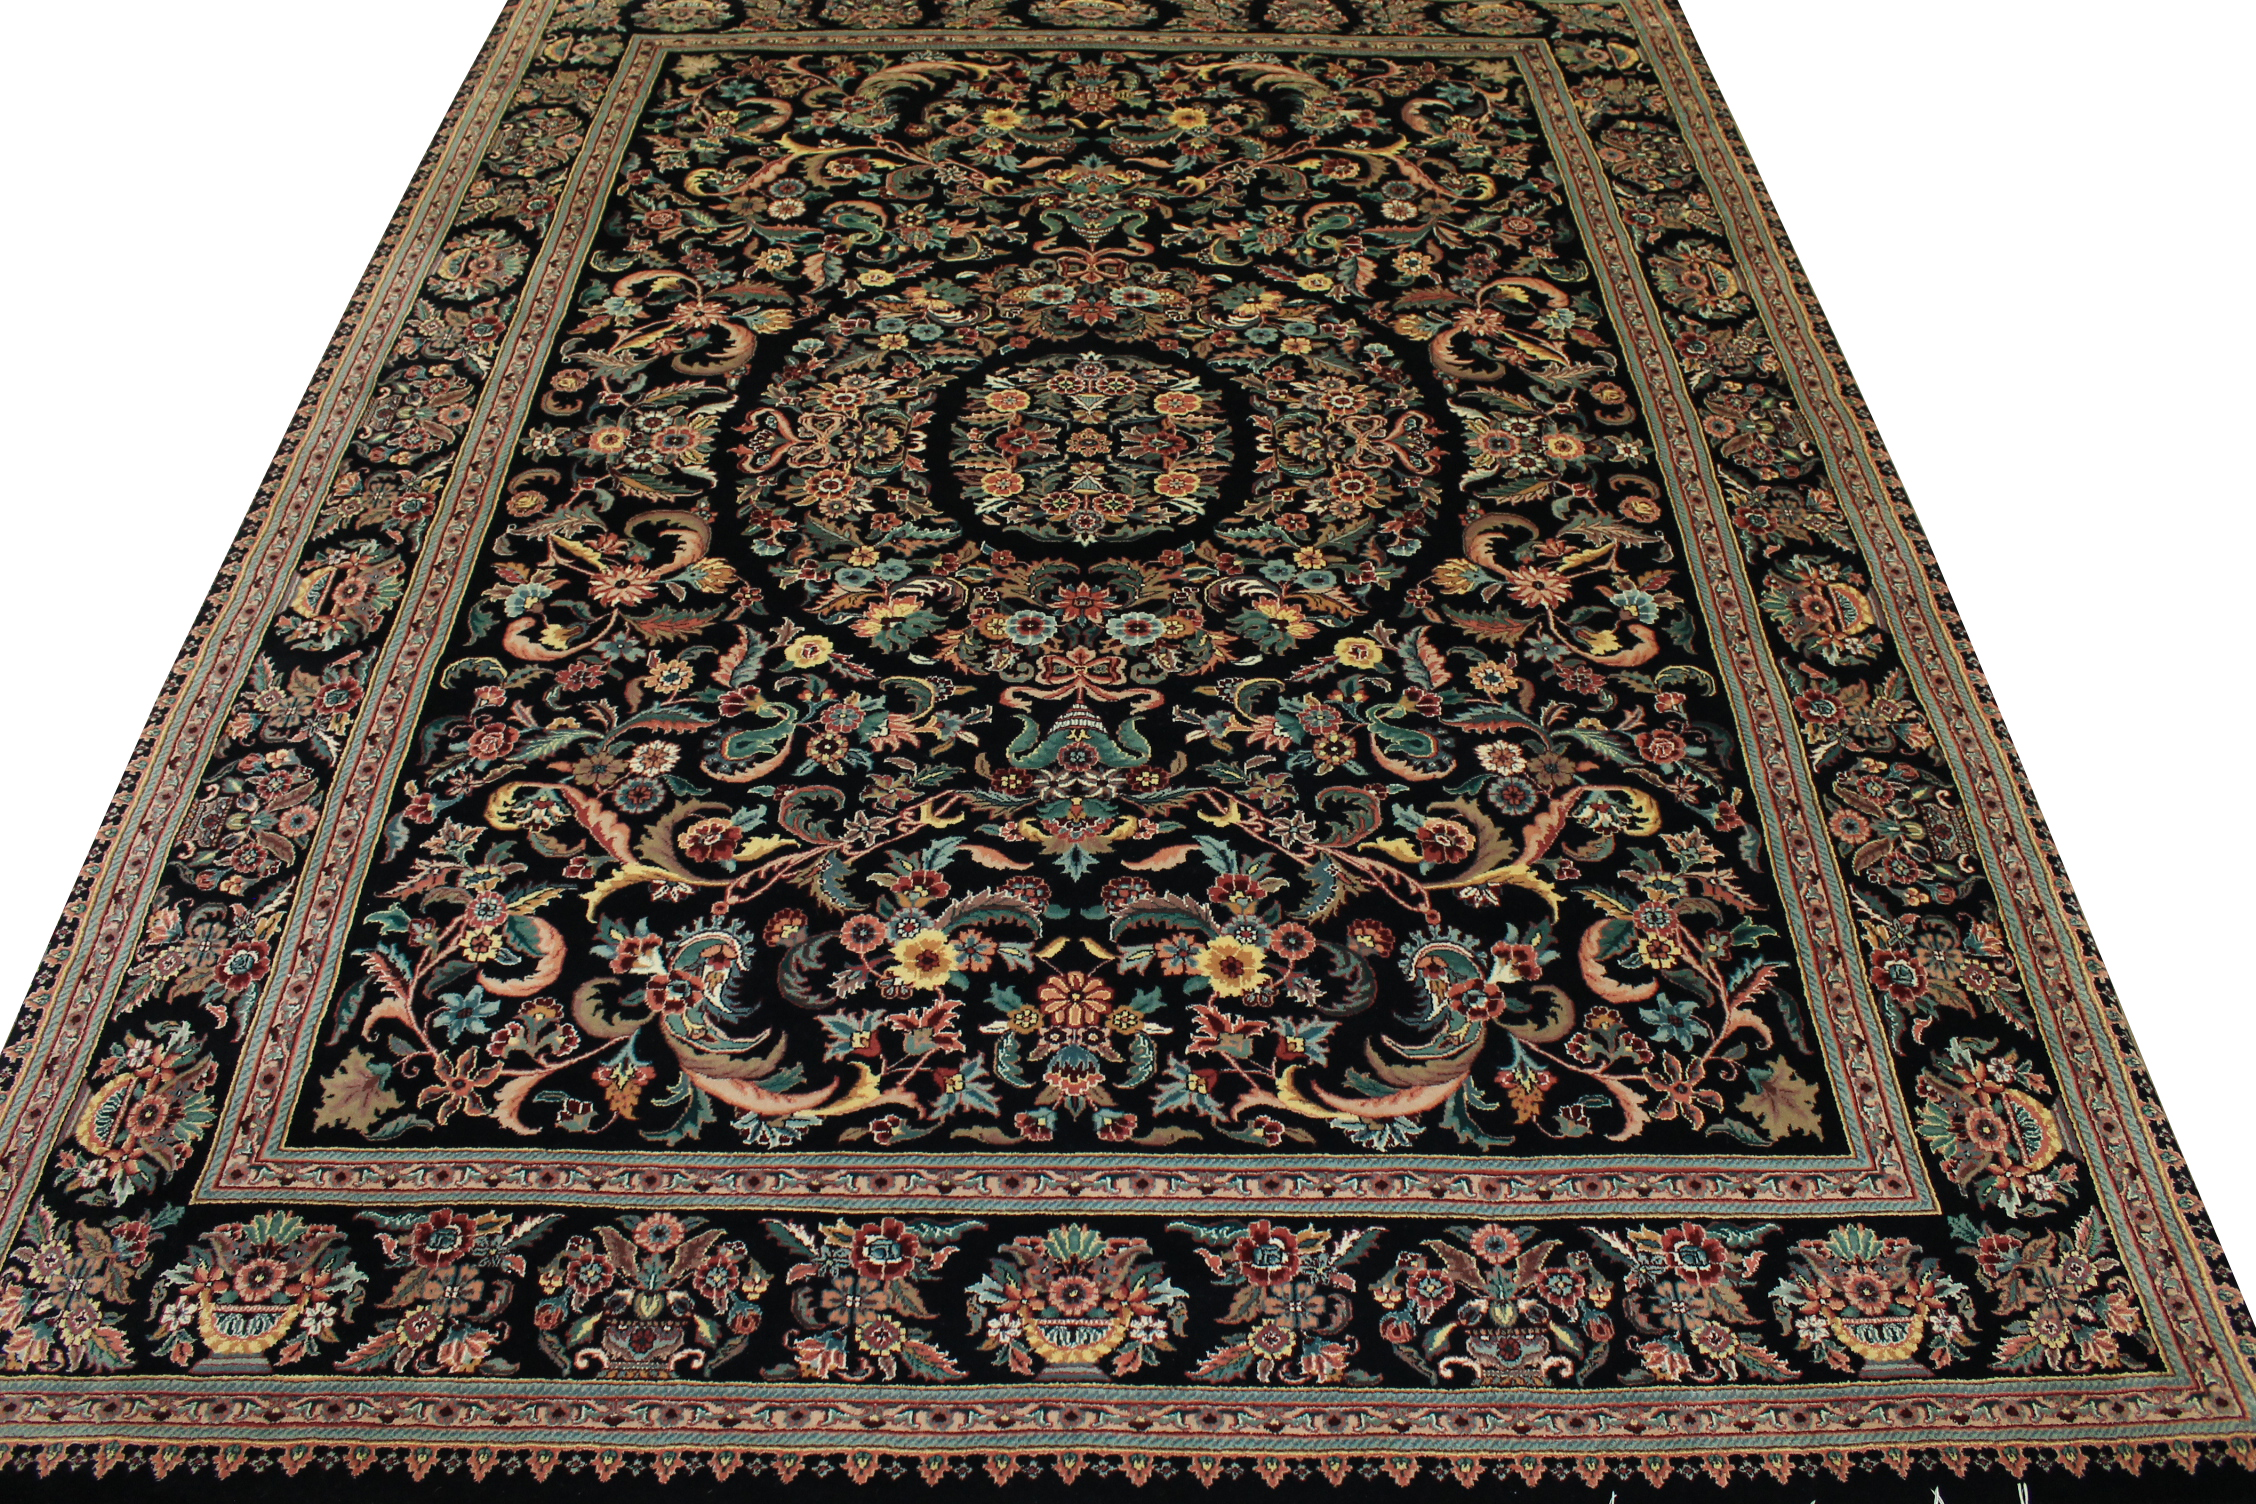 9x12 Traditional Hand Knotted Wool Area Rug - MR0779